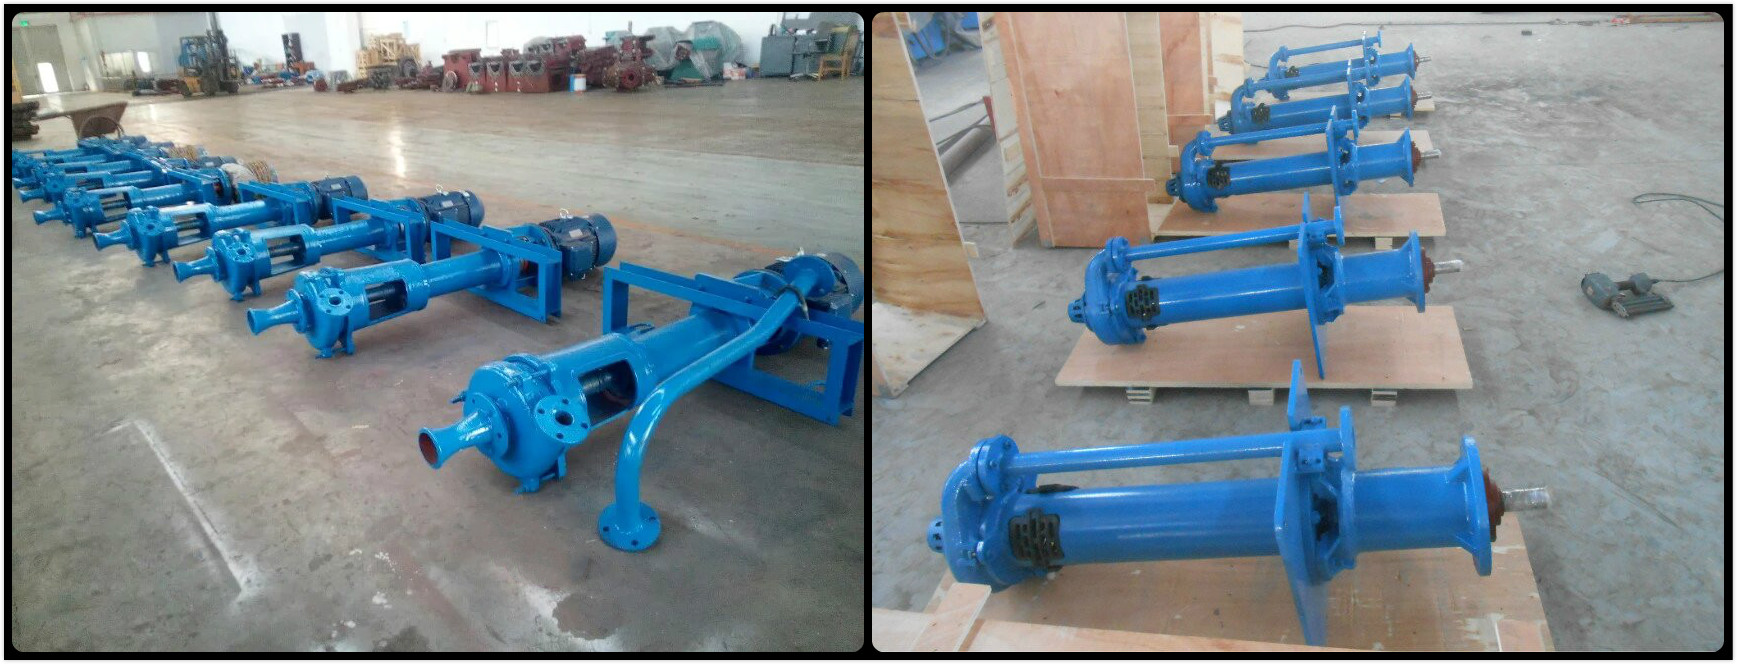 Minerals Processing Sump Pumps